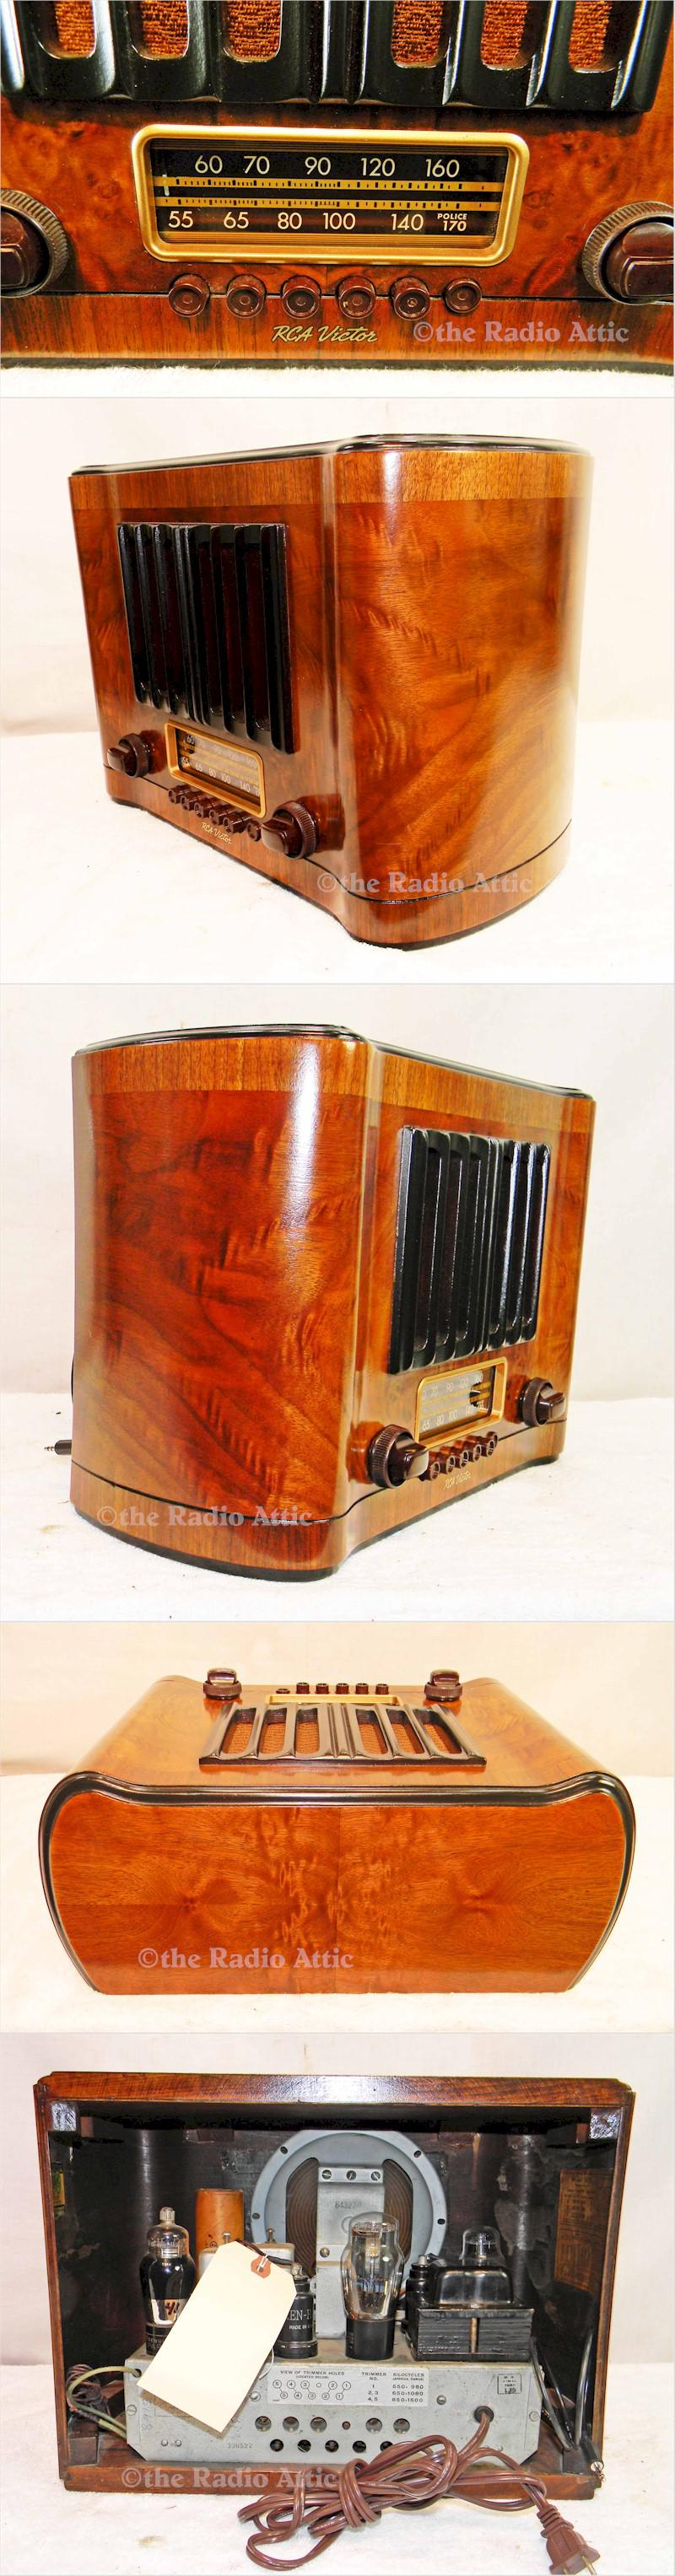 RCA 96T1 Mantle Radio (1939)